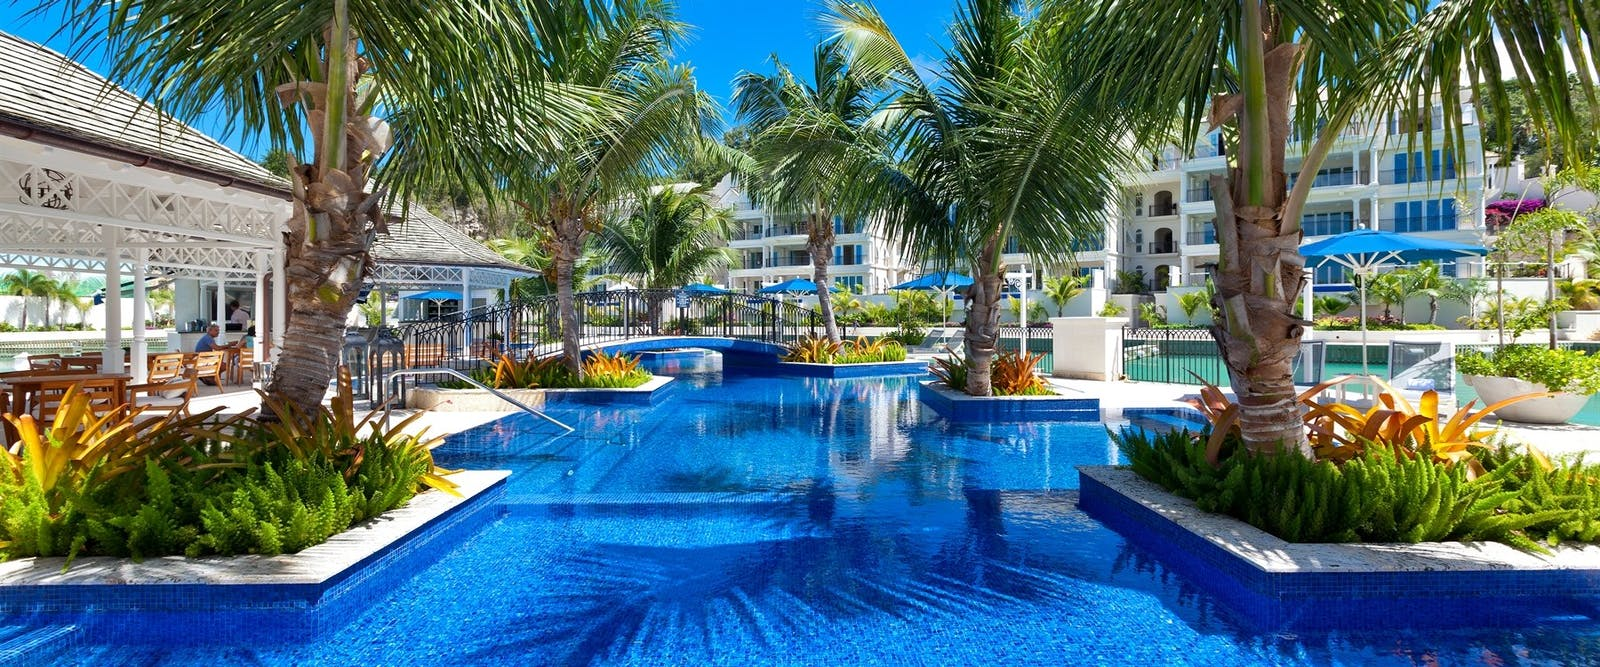 Swimming Pool at Port Ferdinand Marina & Luxury Residences, Barbados